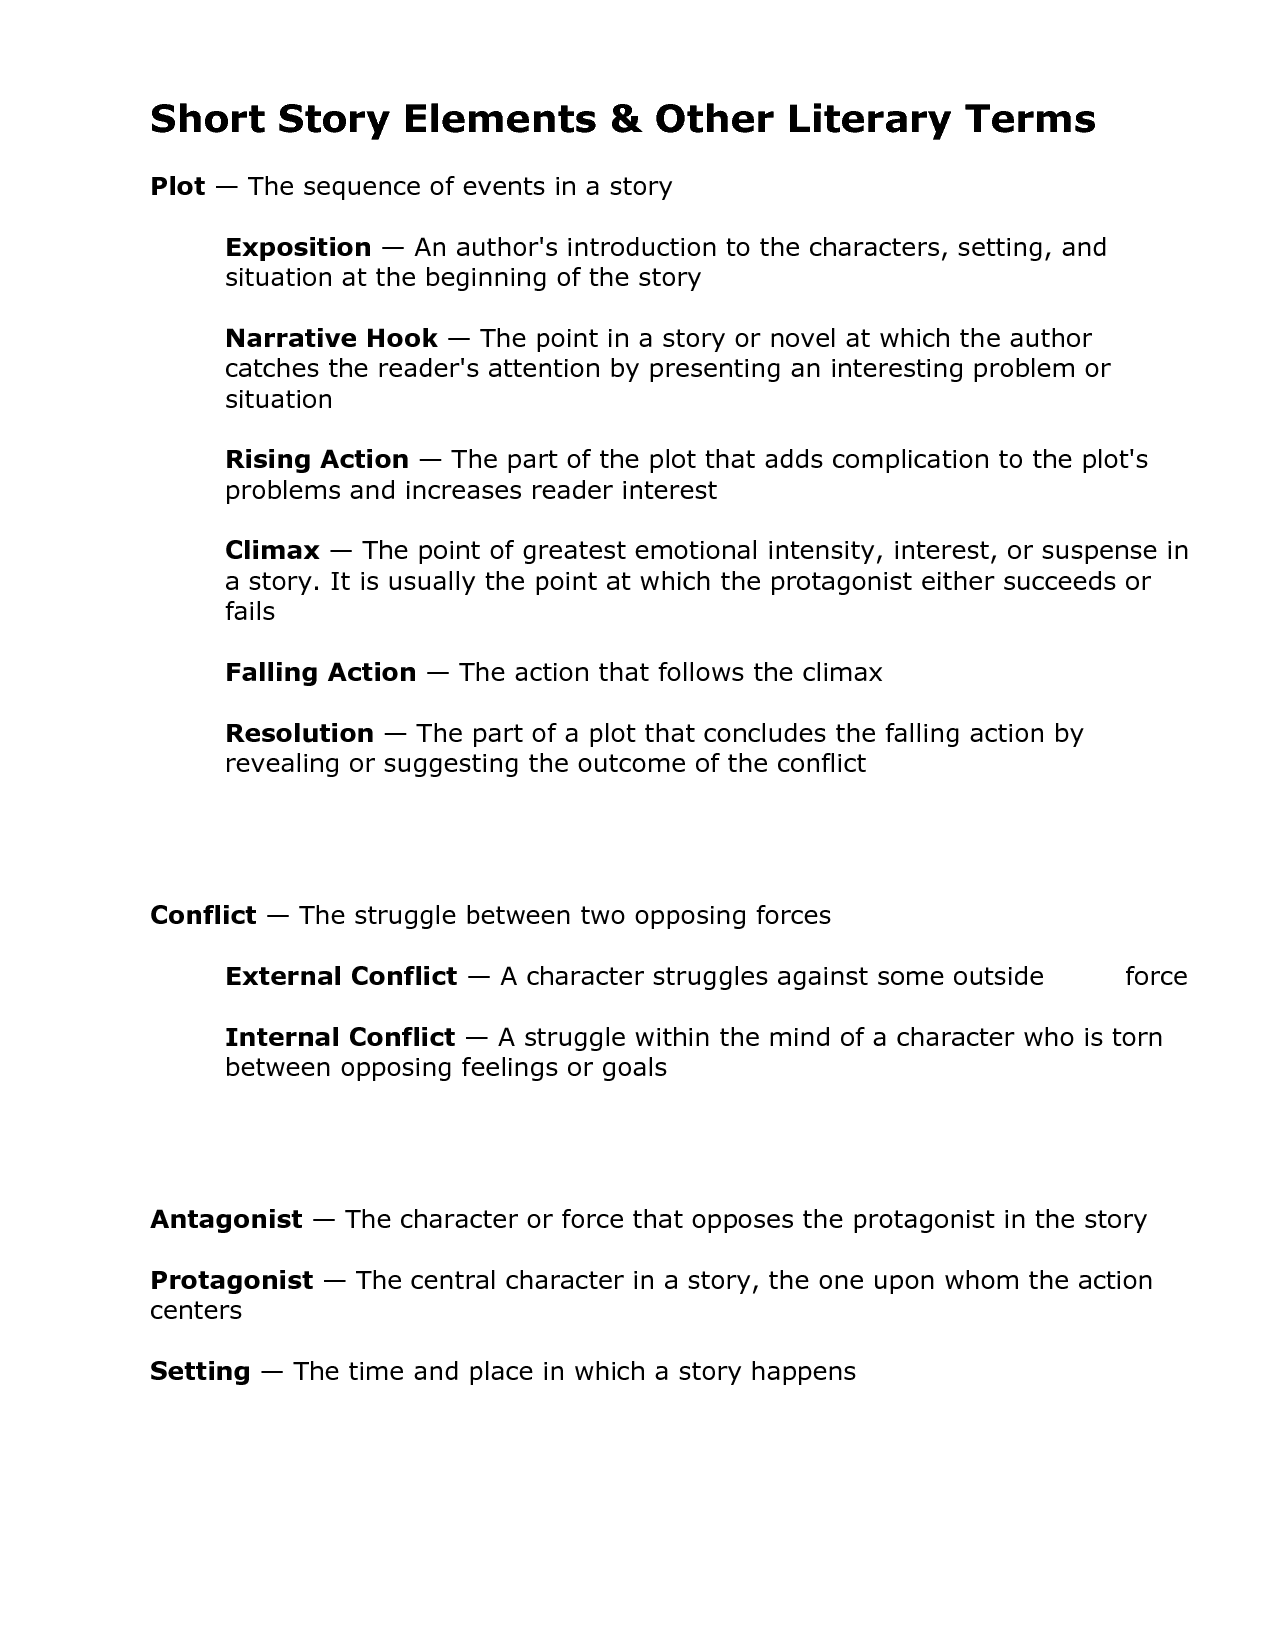 hight resolution of Short Story Elements Other Literary Terms   Literary terms